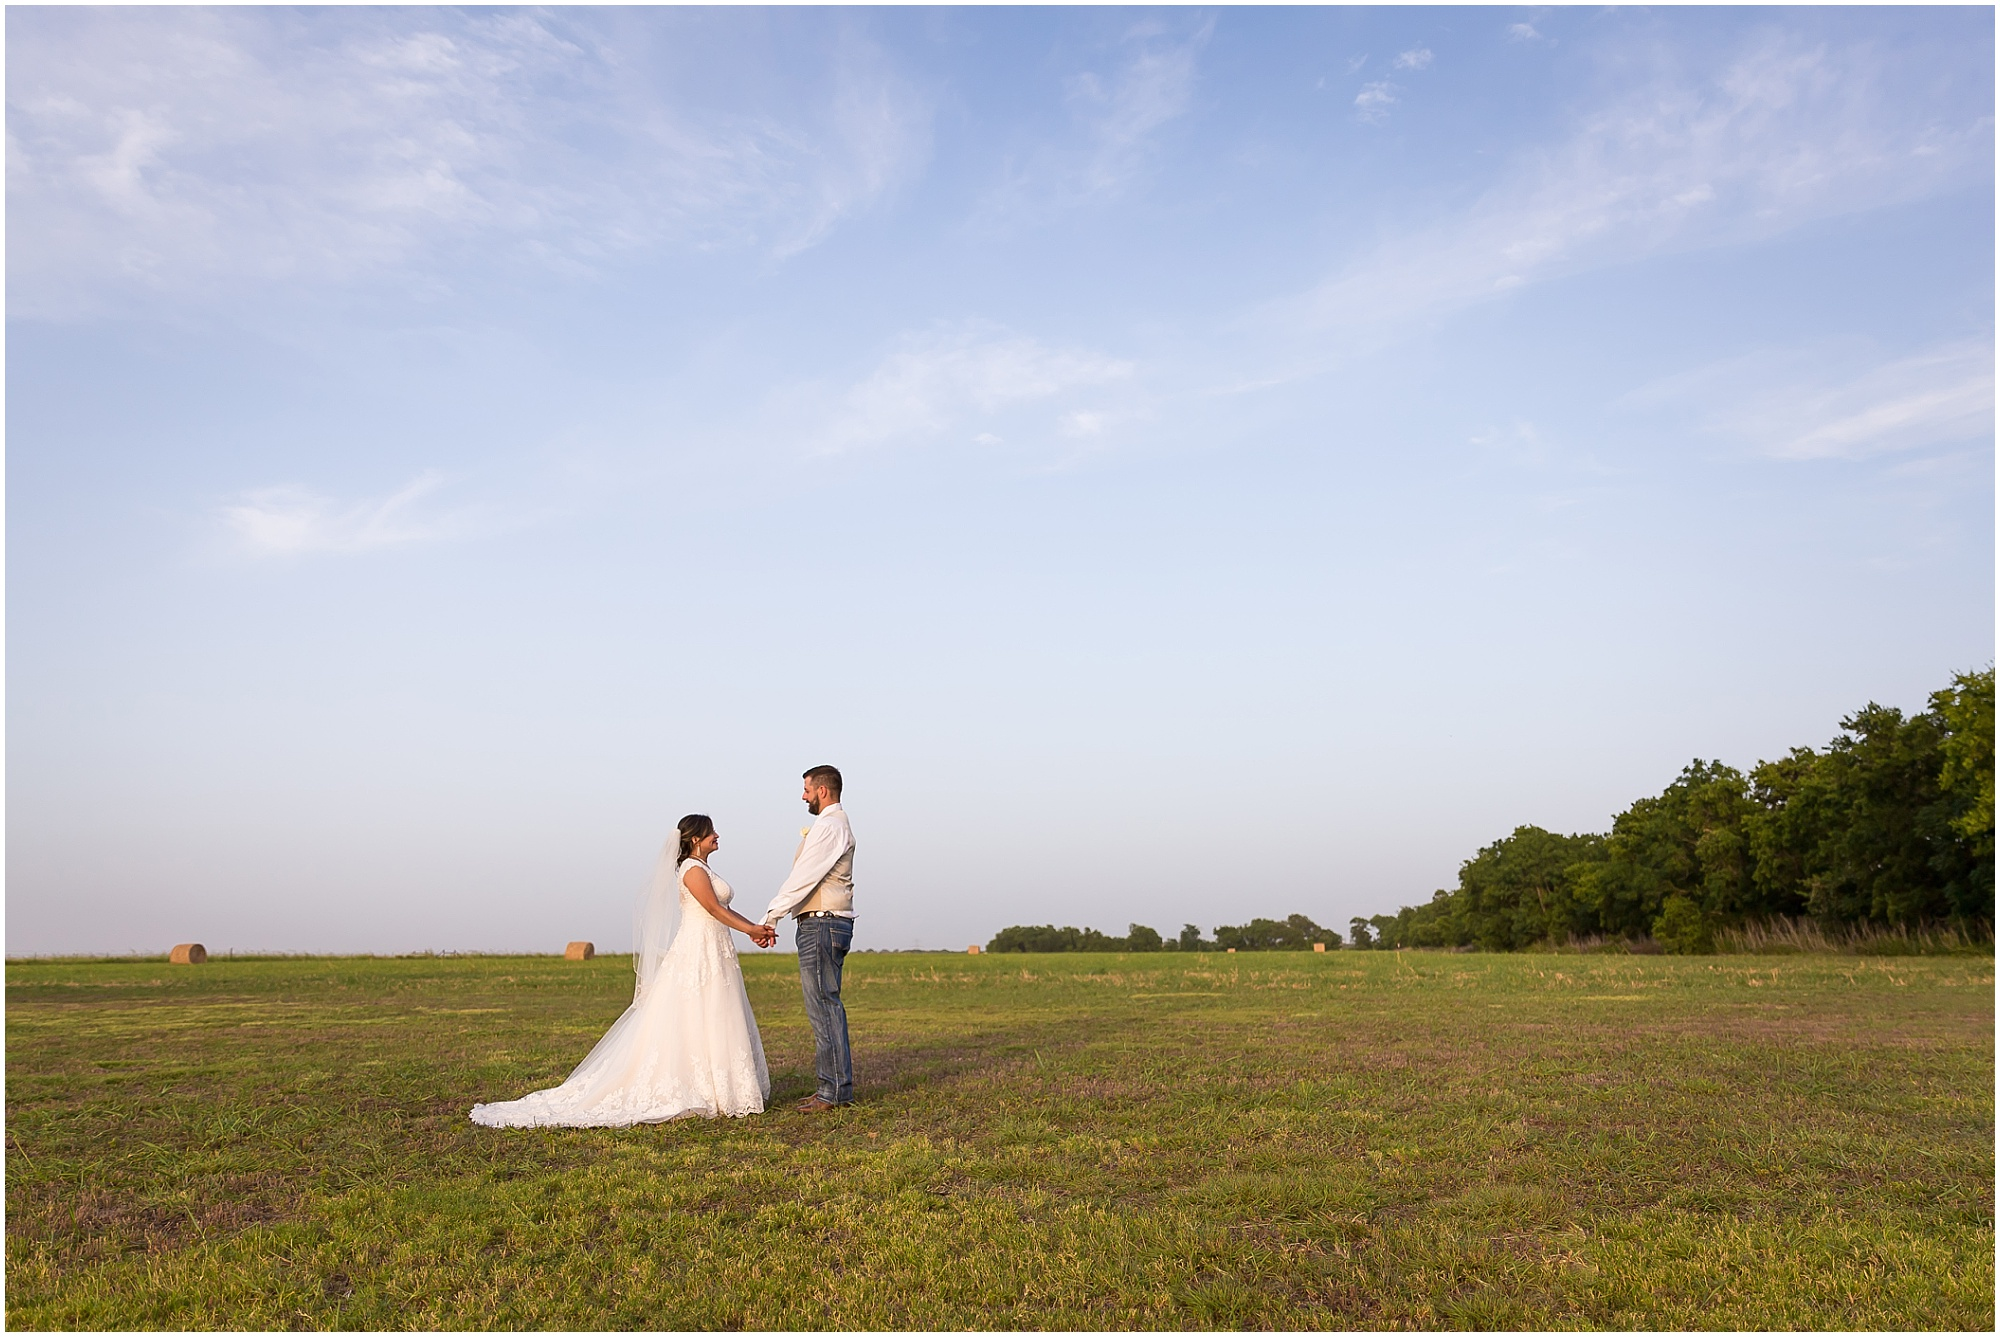 A bride and groom hold hands in a field with hay bales under a blue Texas sky at their rustic wedding in Belton, Texas - Jason & Melaina Photography - www.jasonandmelaina.com